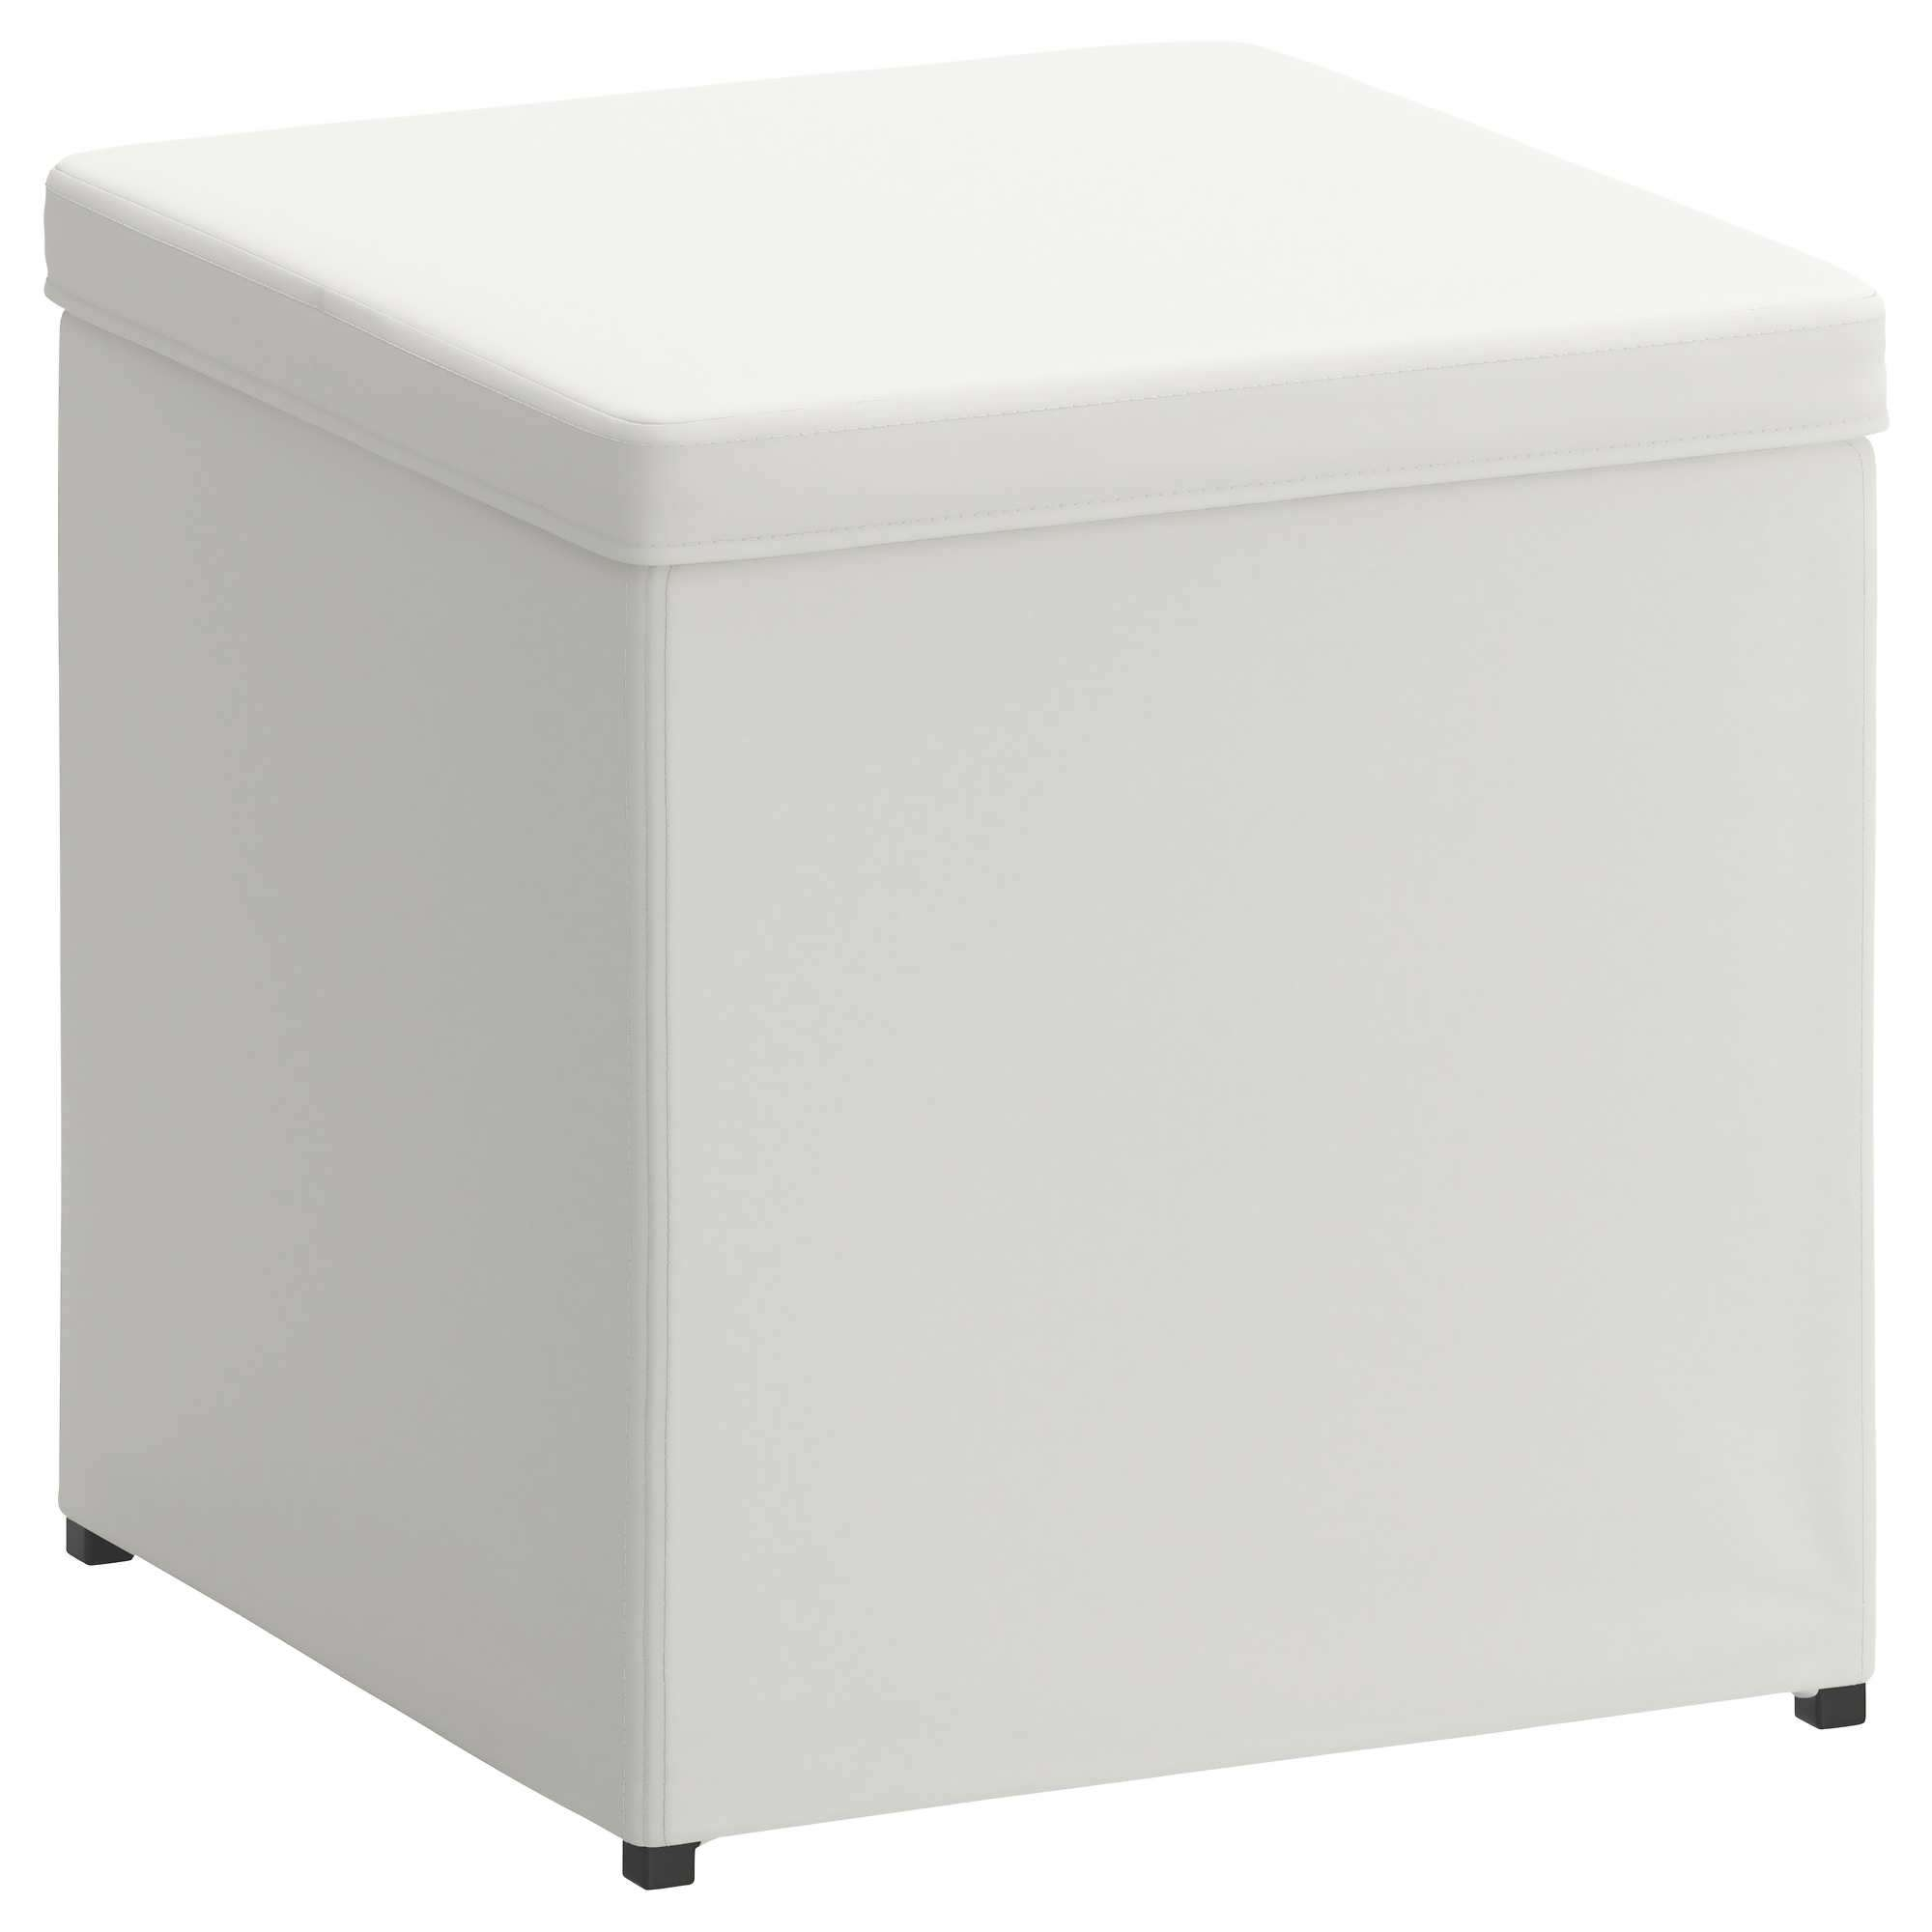 Elegant White Gloss Cube Coffee Table Idea White Cube Coffee Table In Widely Used White Cube Coffee Tables (View 8 of 20)